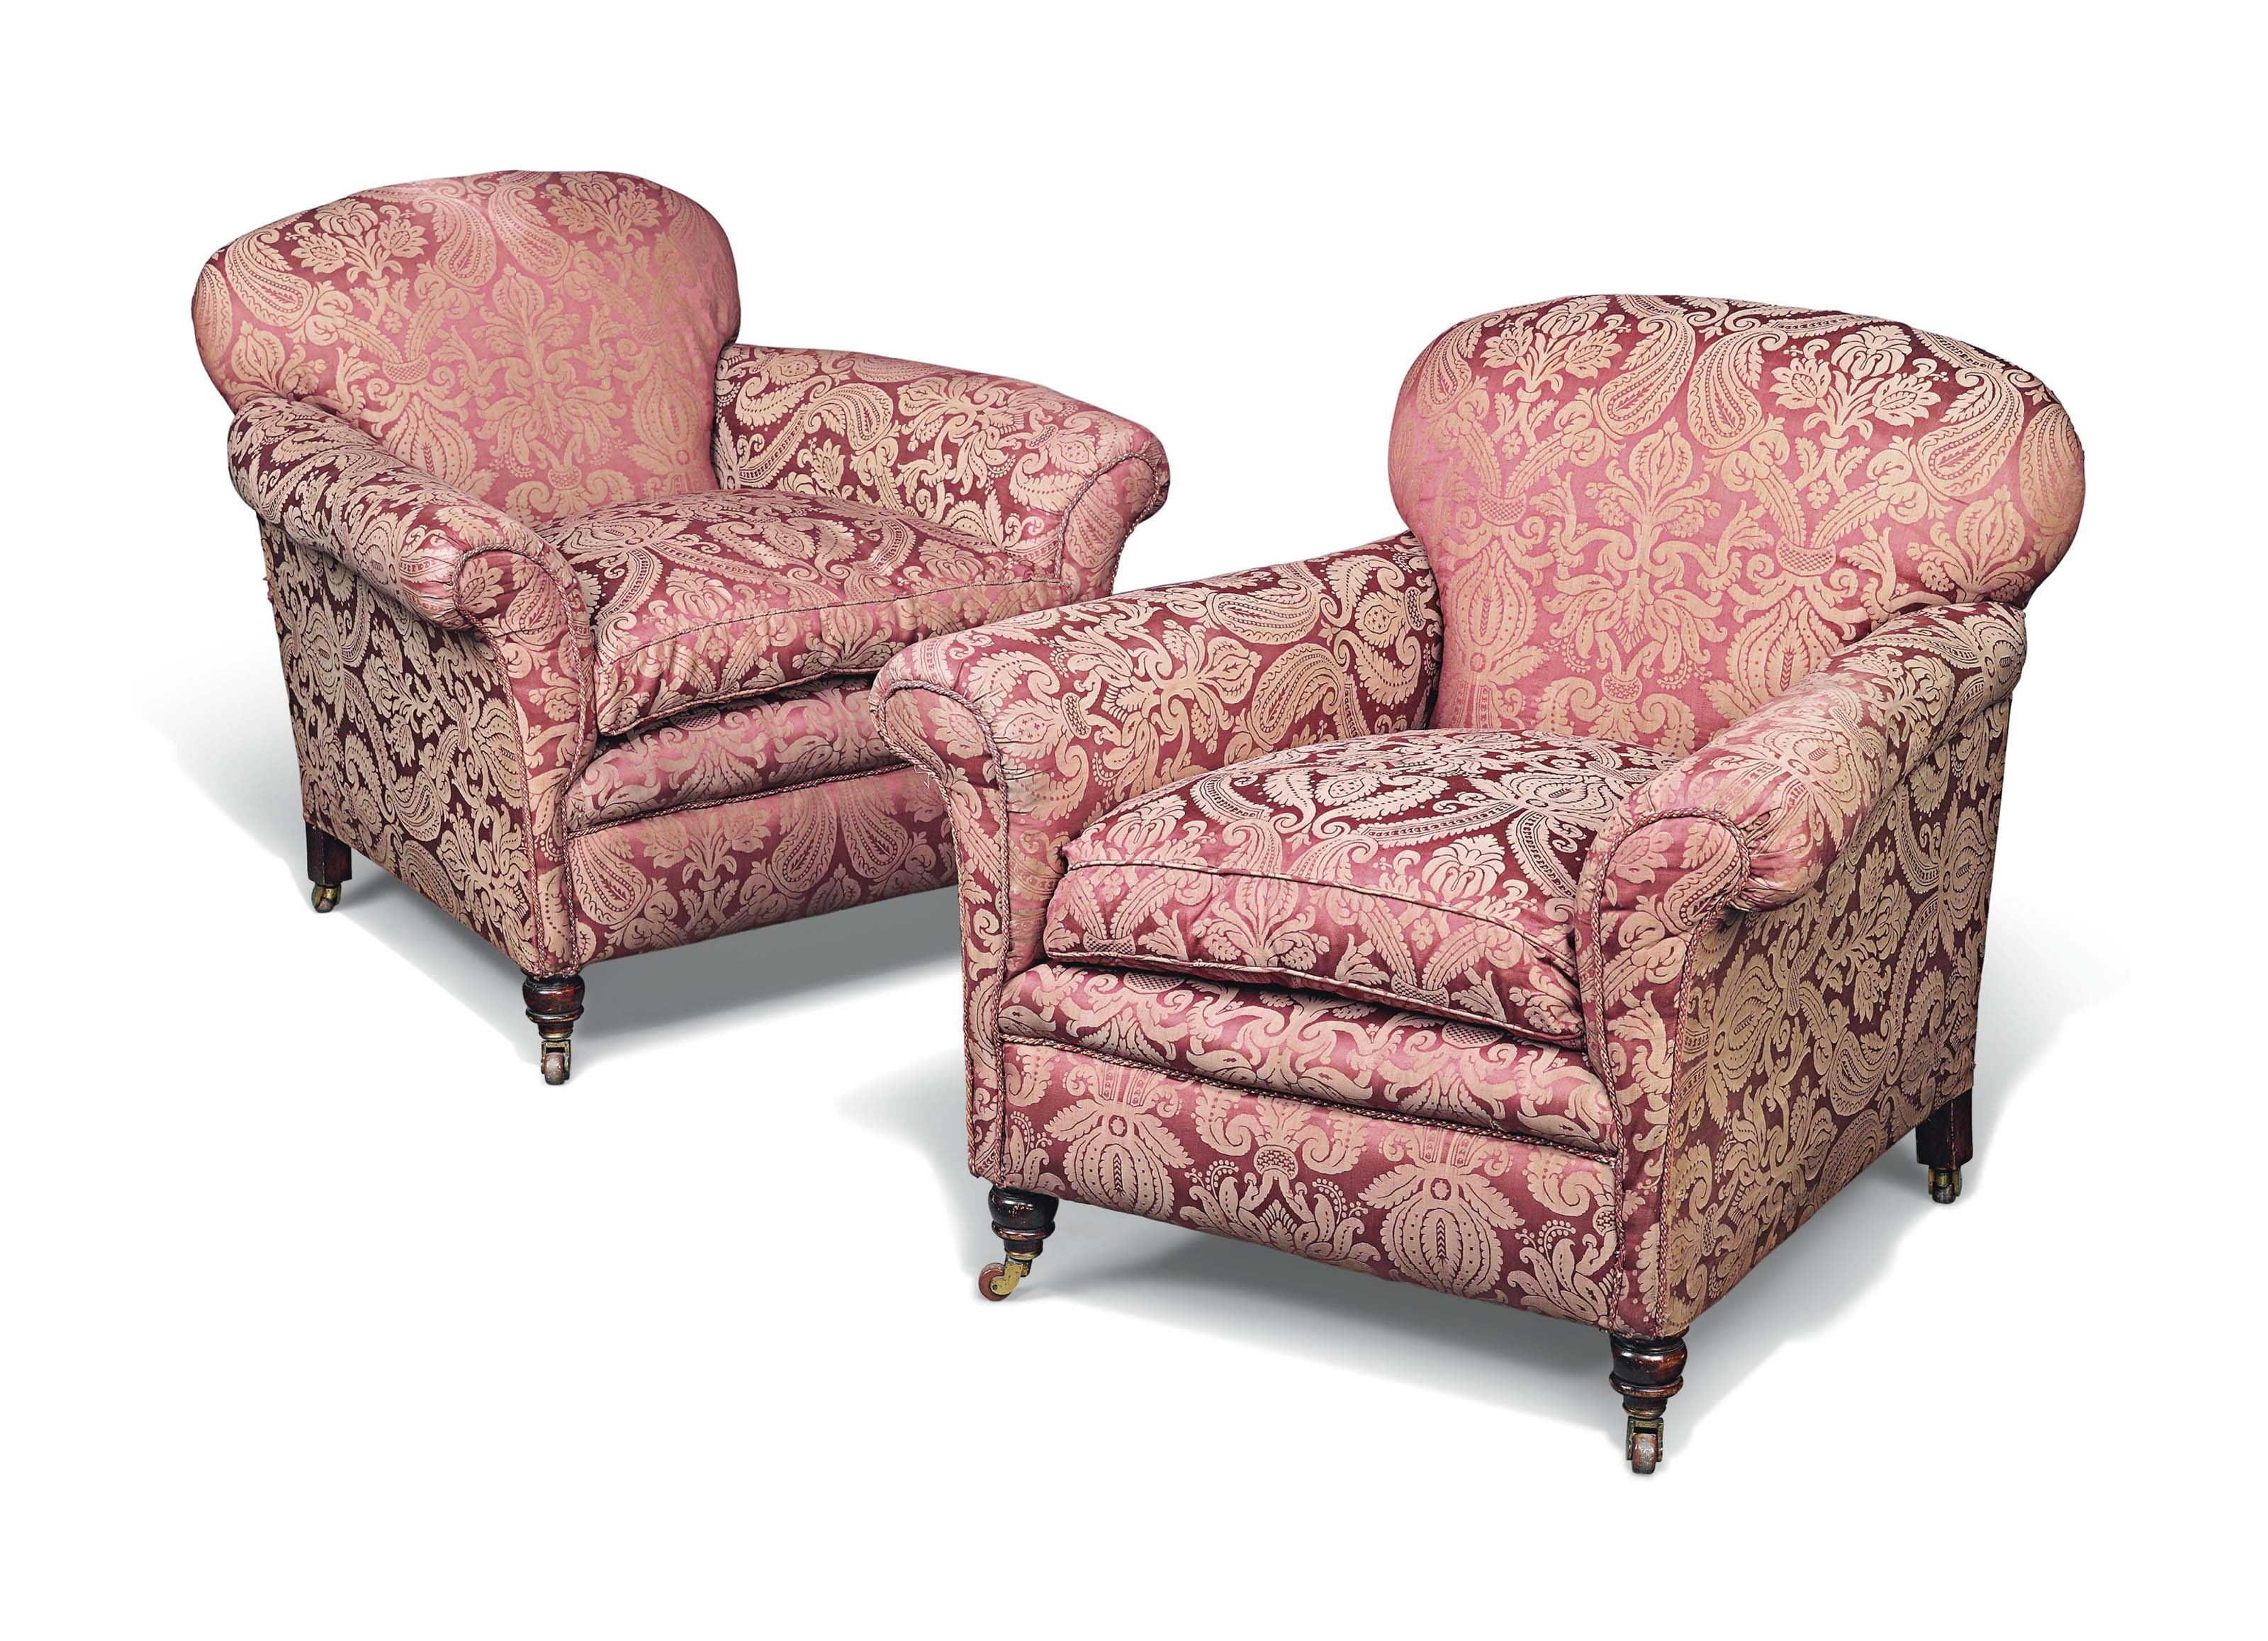 A PAIR OF LATE VICTORIAN EASY